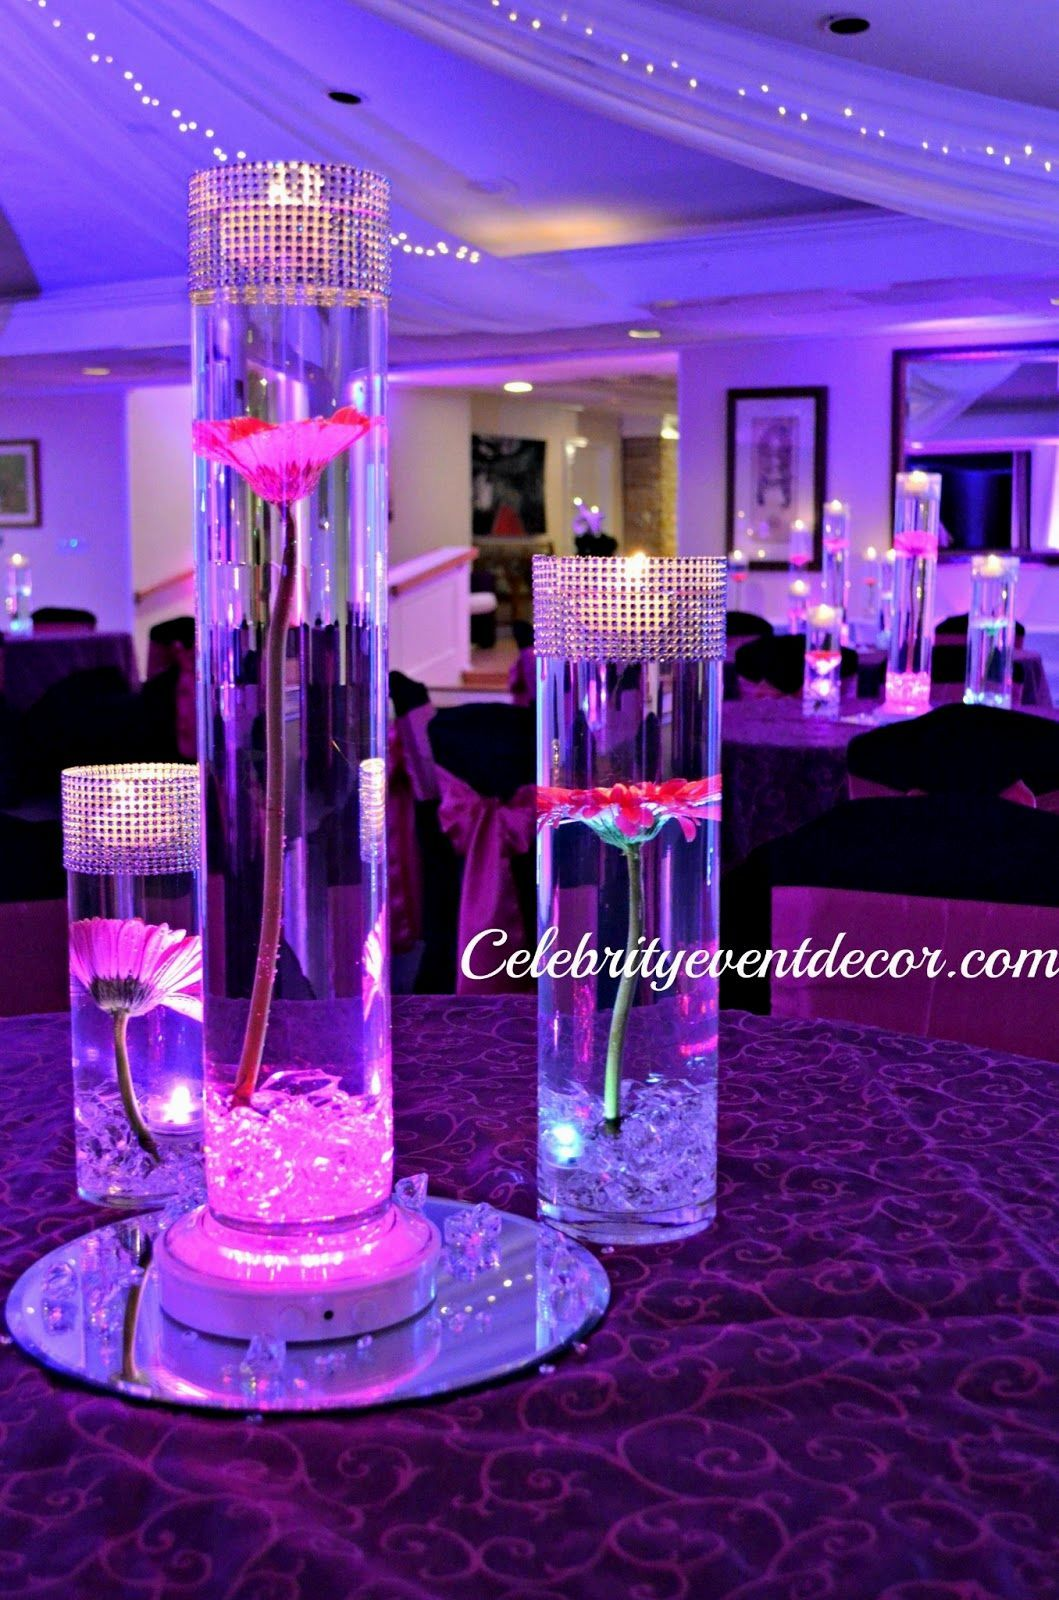 Image Result For How To Decorate Birthday Party Room 16